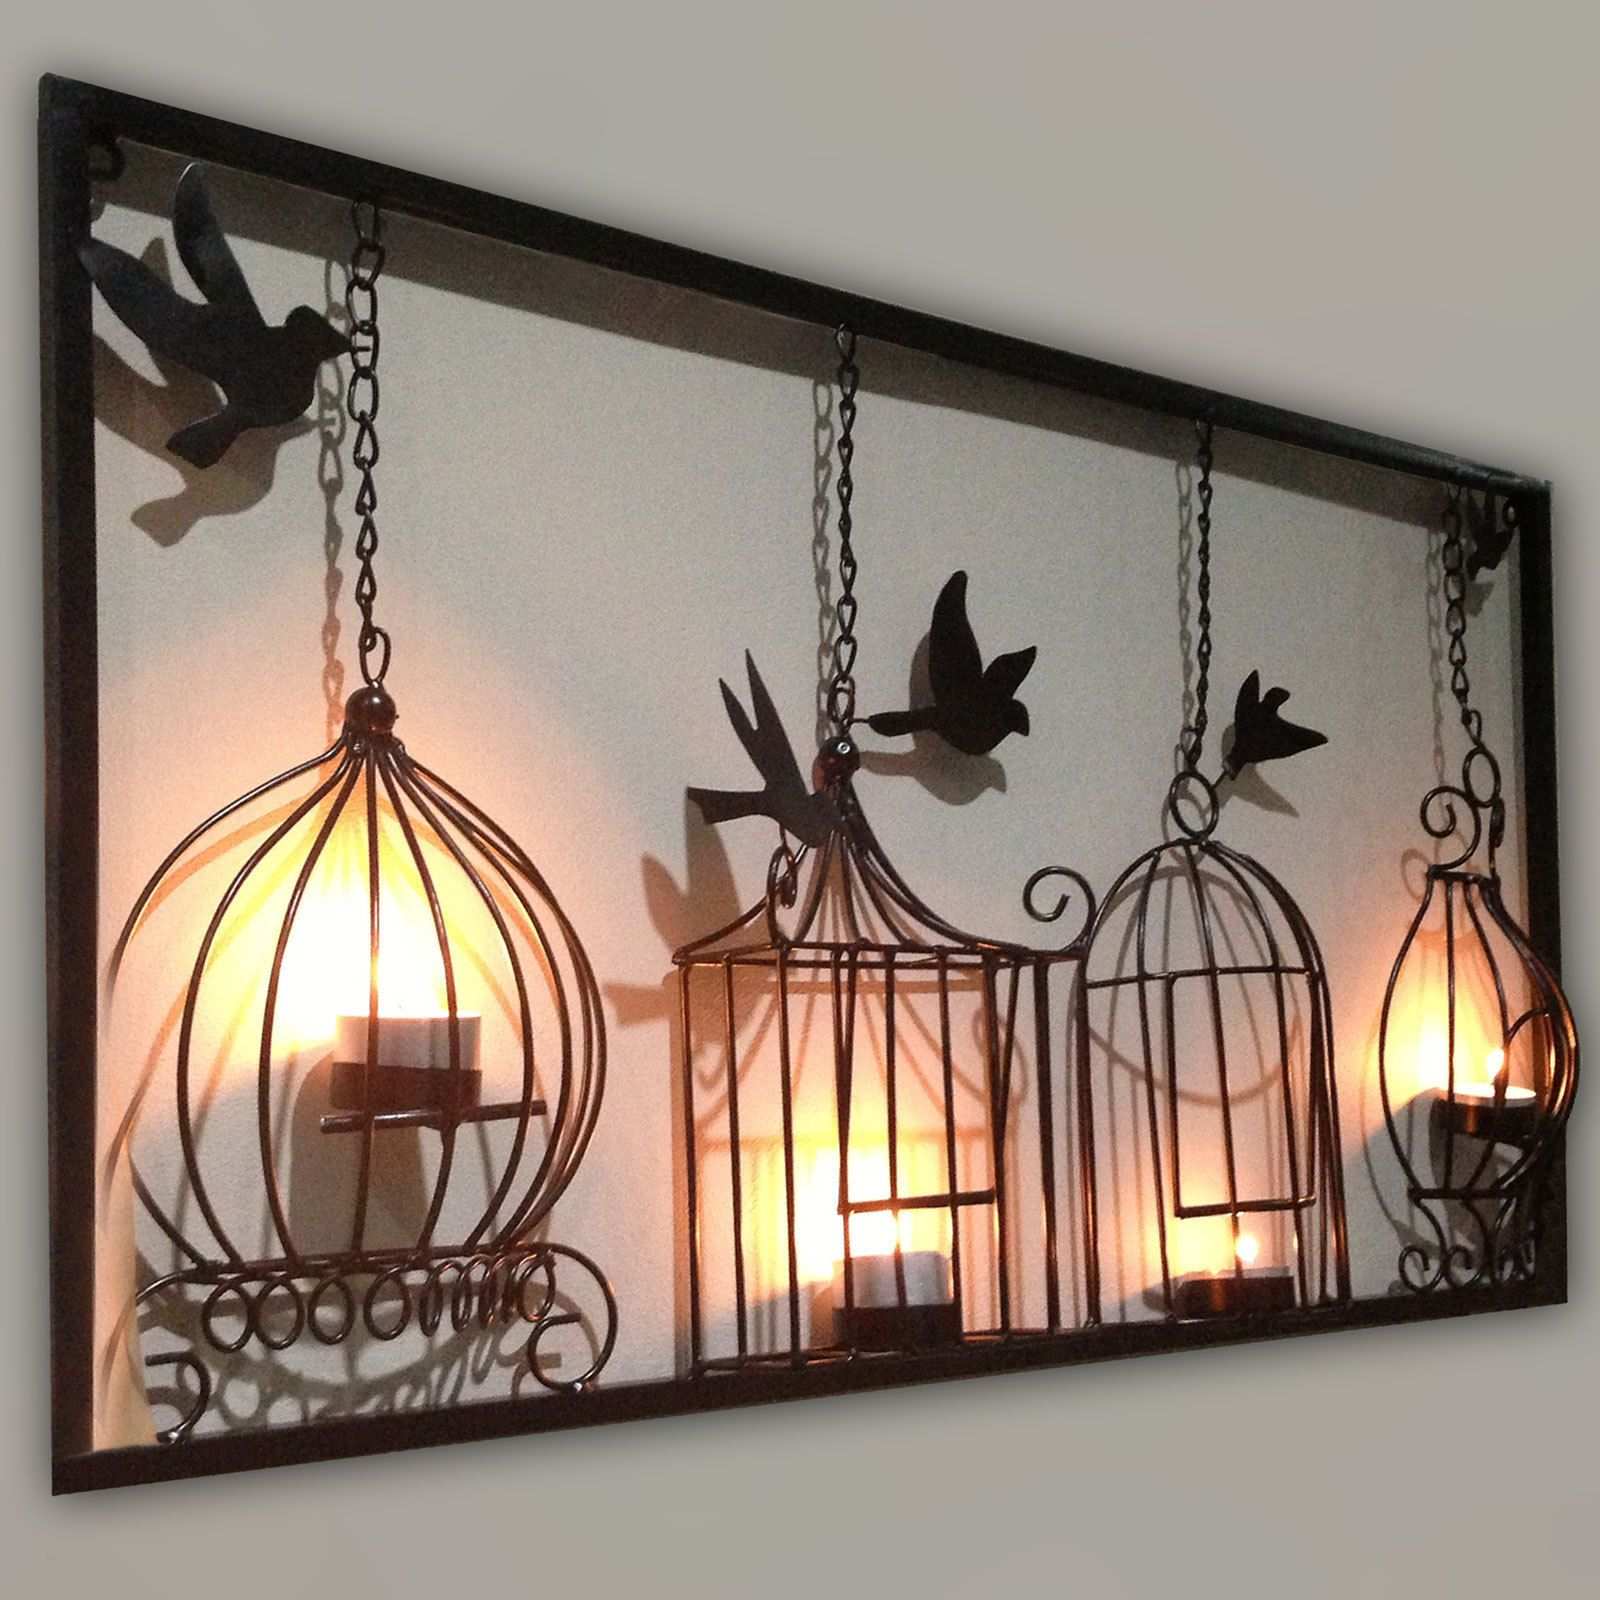 Black Wrought Iron Wall Art Mesmerizing Birdcage Tea Light Wall Art Metal Wall Hanging Candle Holder Black 2018